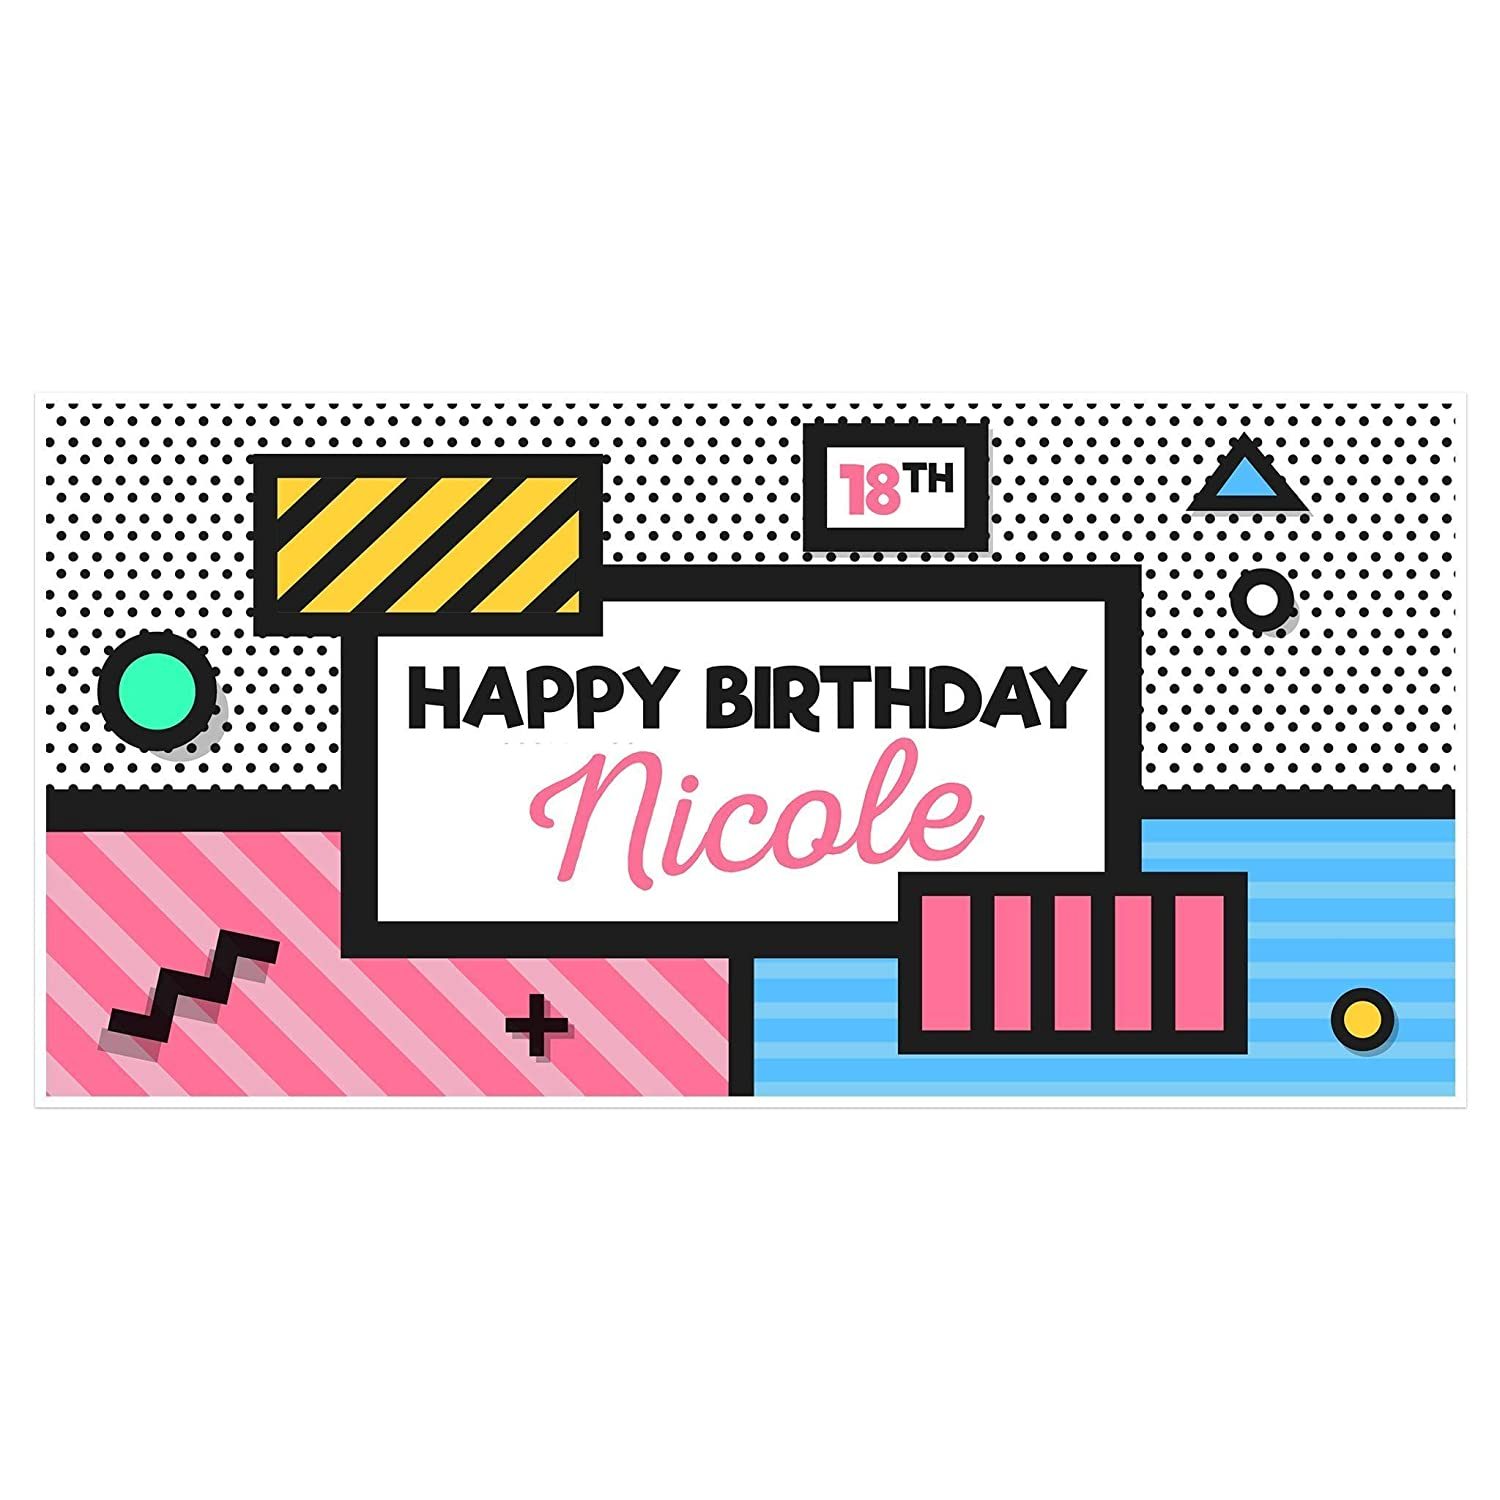 Personalised Happy Birthday Party Gift Idea Banner Supplies Canvas Decorations